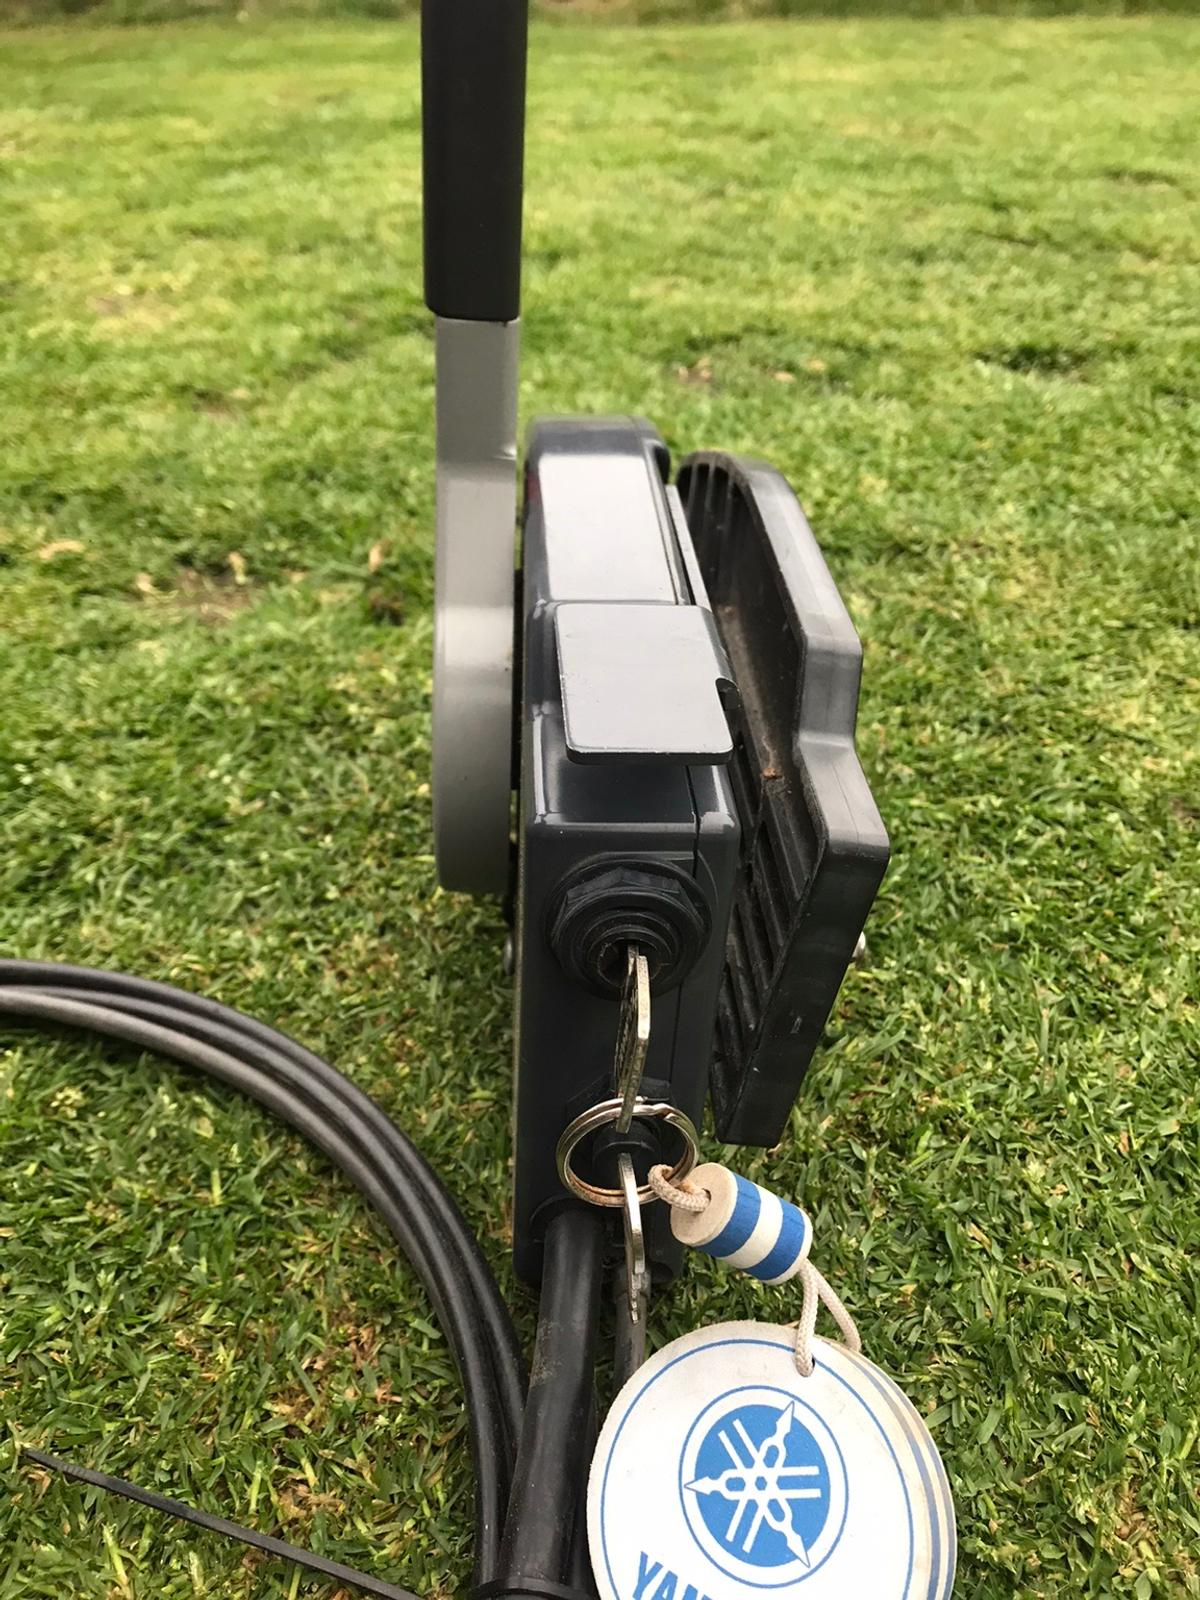 Yamaha 703 Remote Control Box - Outboard Motor, 10pin Trim / Tilt With key Throttle cables  Collection Caton nr Lancaster